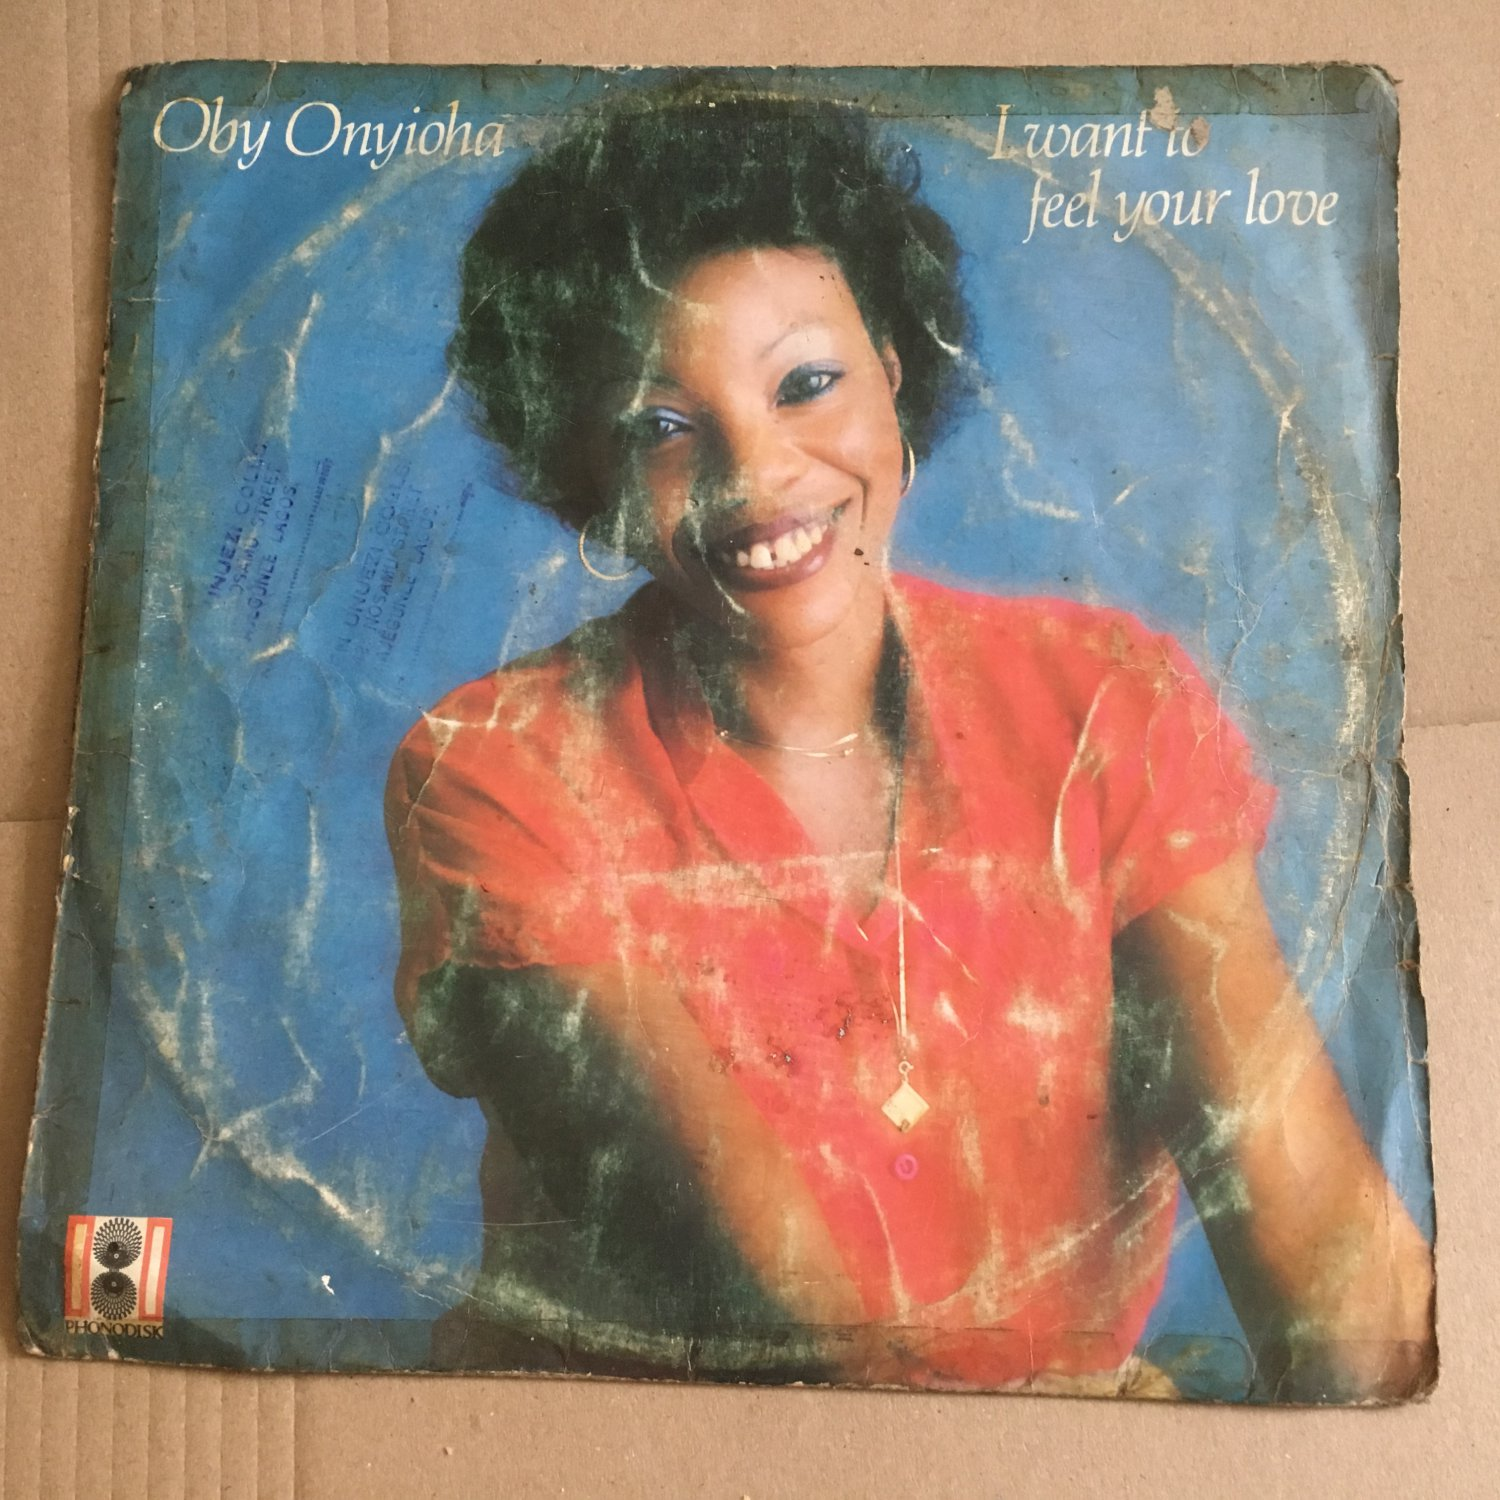 OBY ONYIOHA LP i want to feel your love NIGERIA BOOGIE FUNK mp3 LISTEN